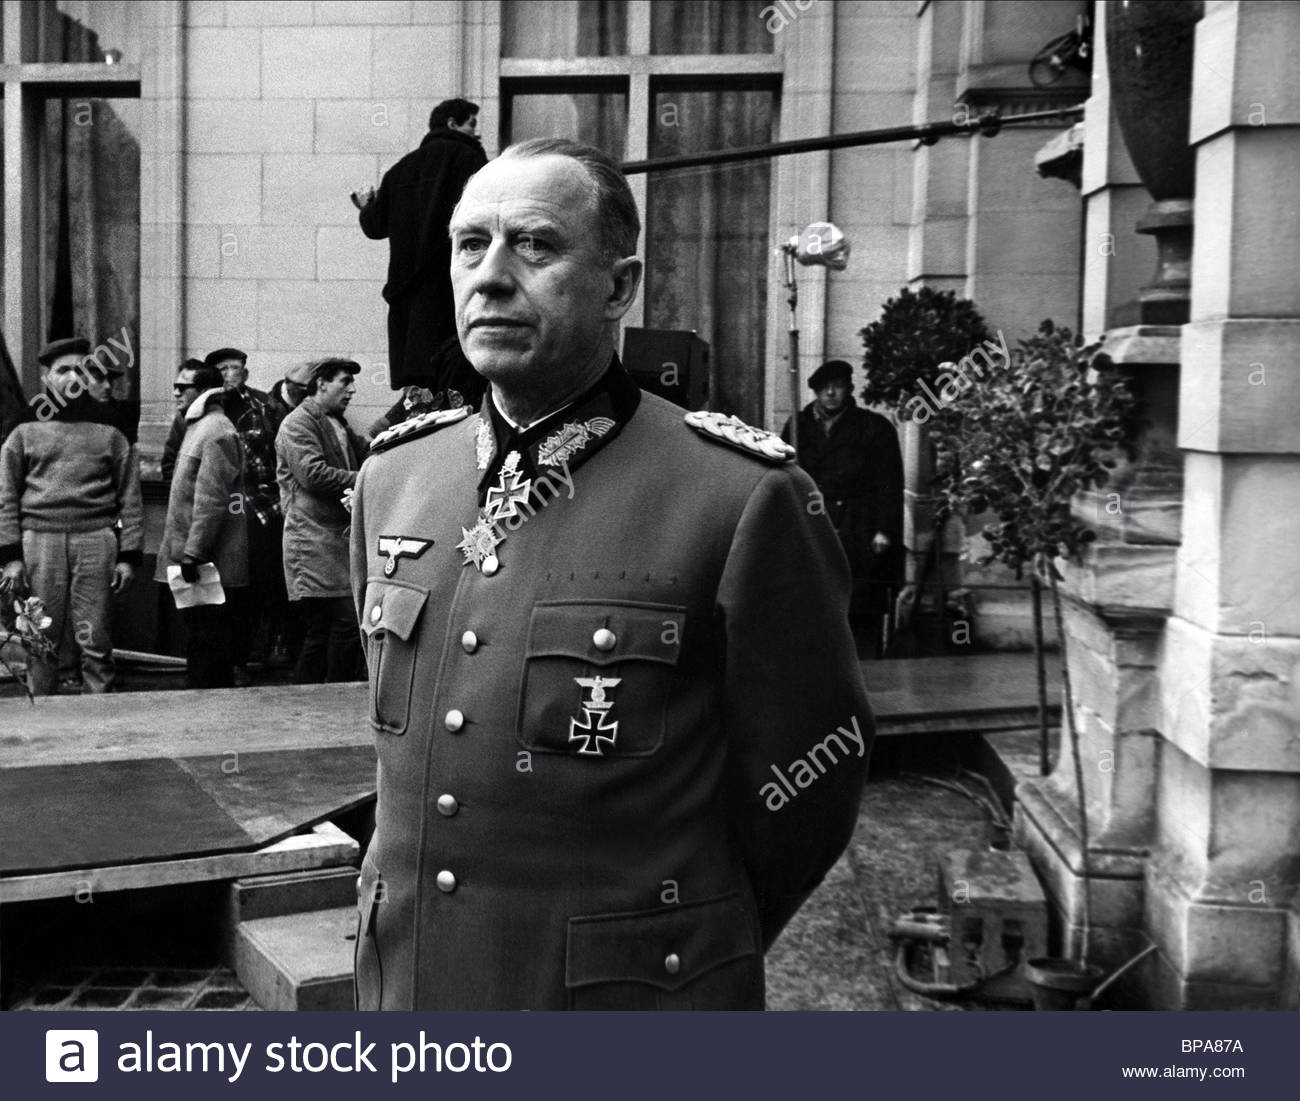 WERNER HINZ THE LONGEST DAY (1962) - Stock Image